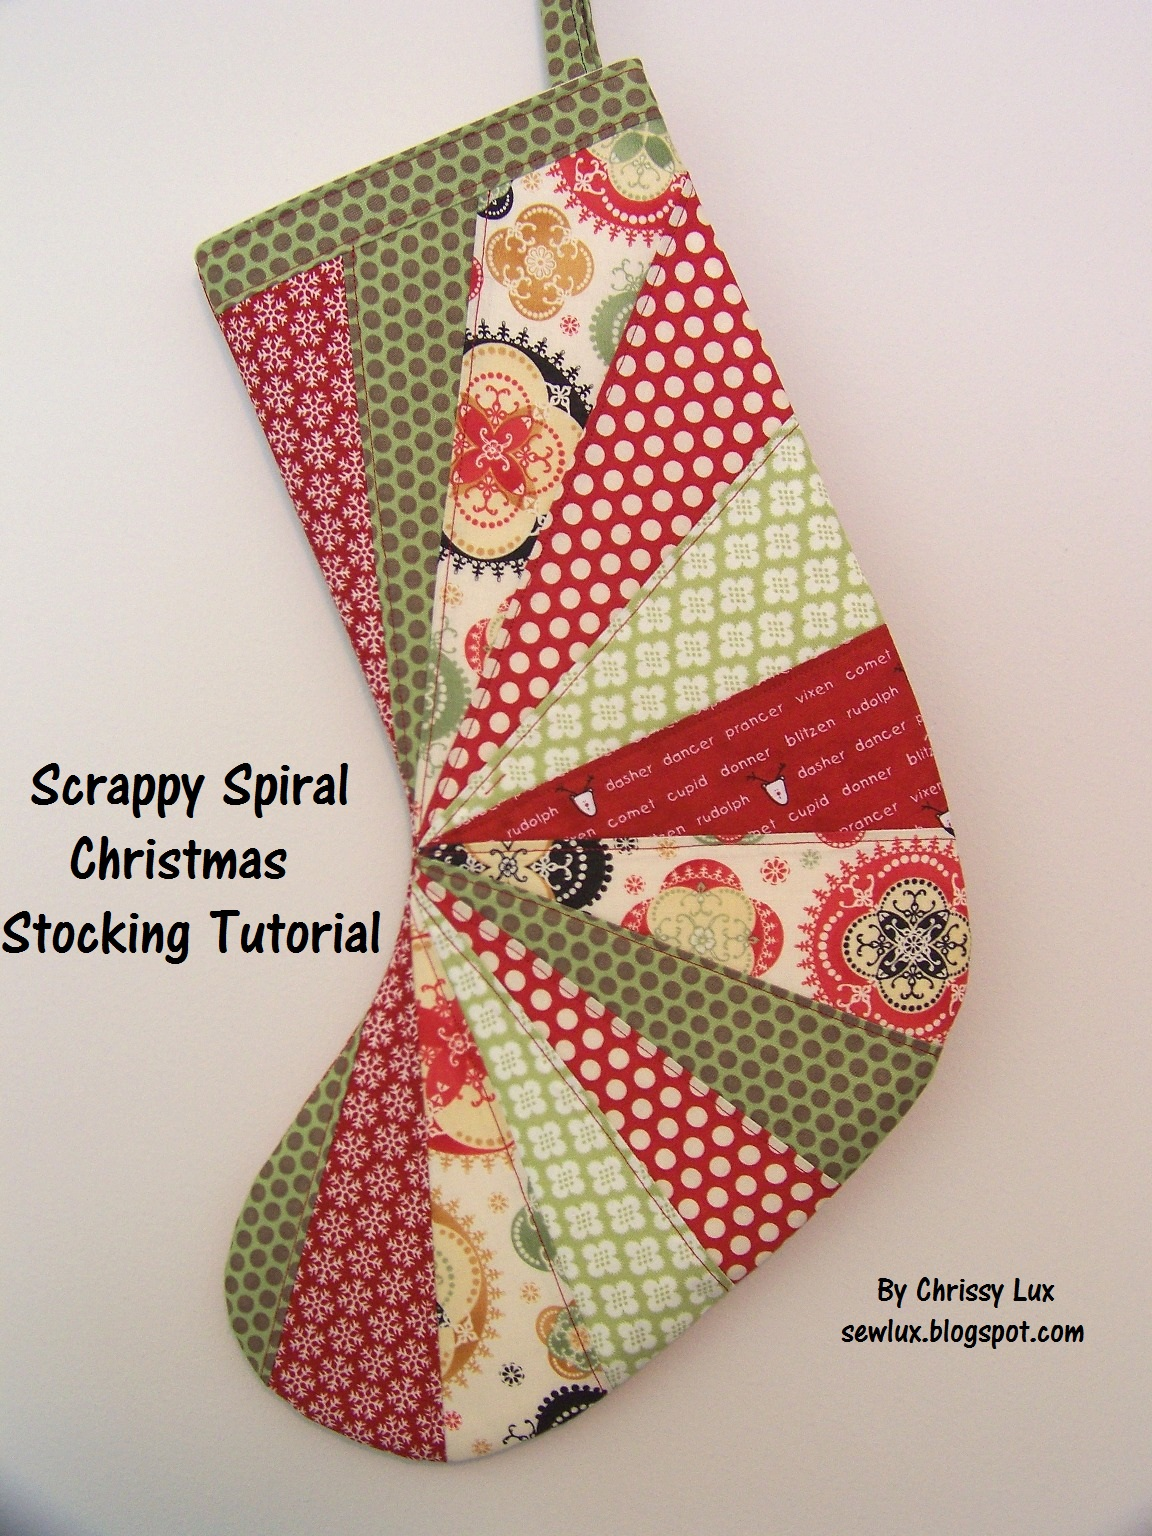 Handmade Christmas Stockings 27 Free Diy Homemade Christmas Stockings Patterns And Tutorials